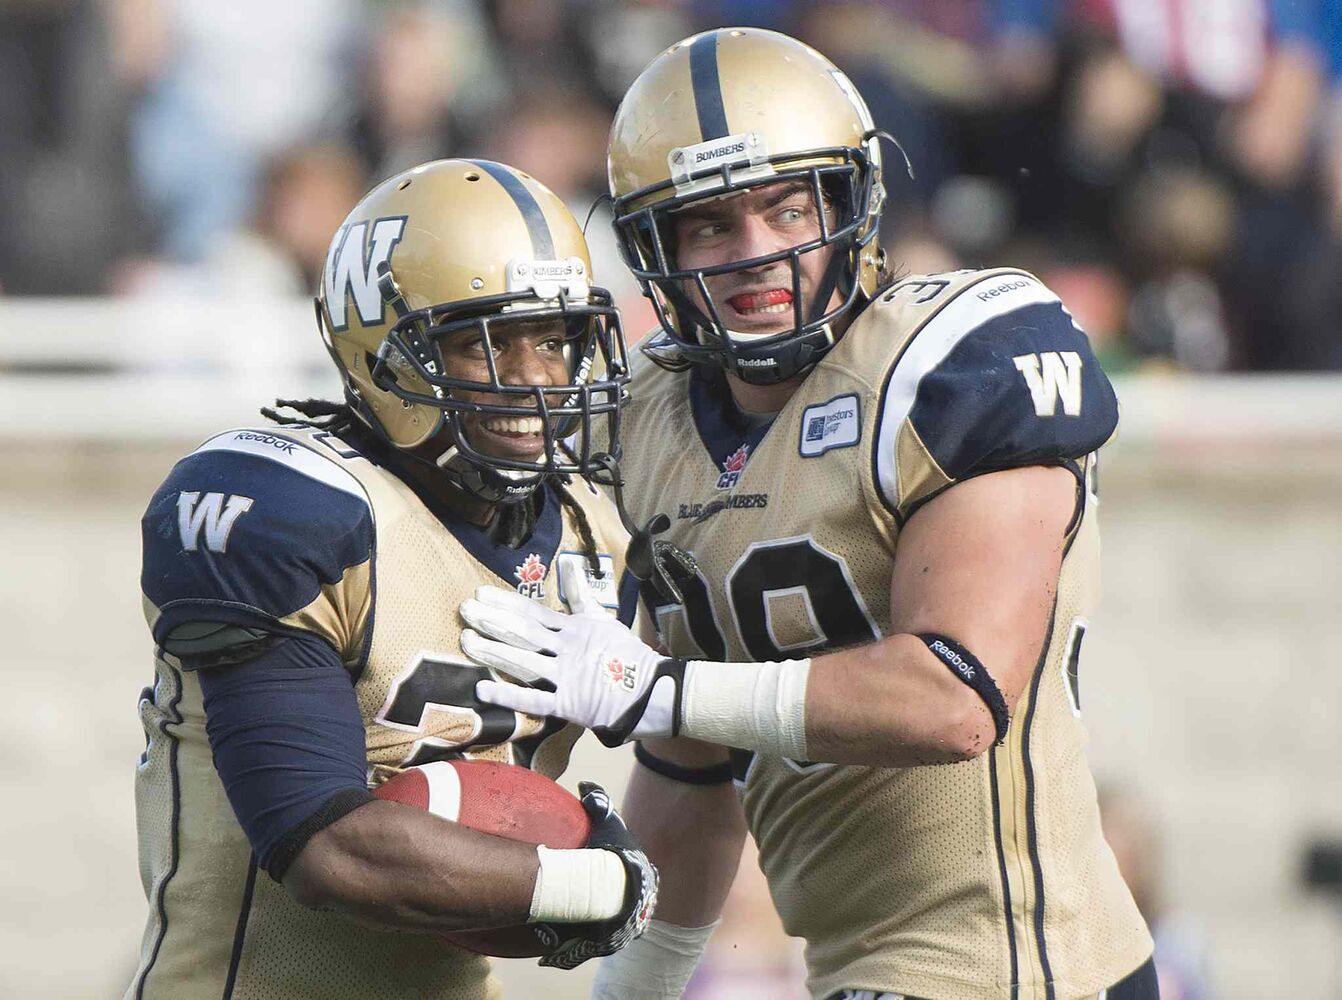 Winnipeg Blue Bombers' Will Ford, left, celebrates with teammate Michel-Pierre Pontbriand after scoring a touchdown against the Montreal Alouettes during second-half CFL football action in Montreal Monday. The Bombers went on to win 34-27.